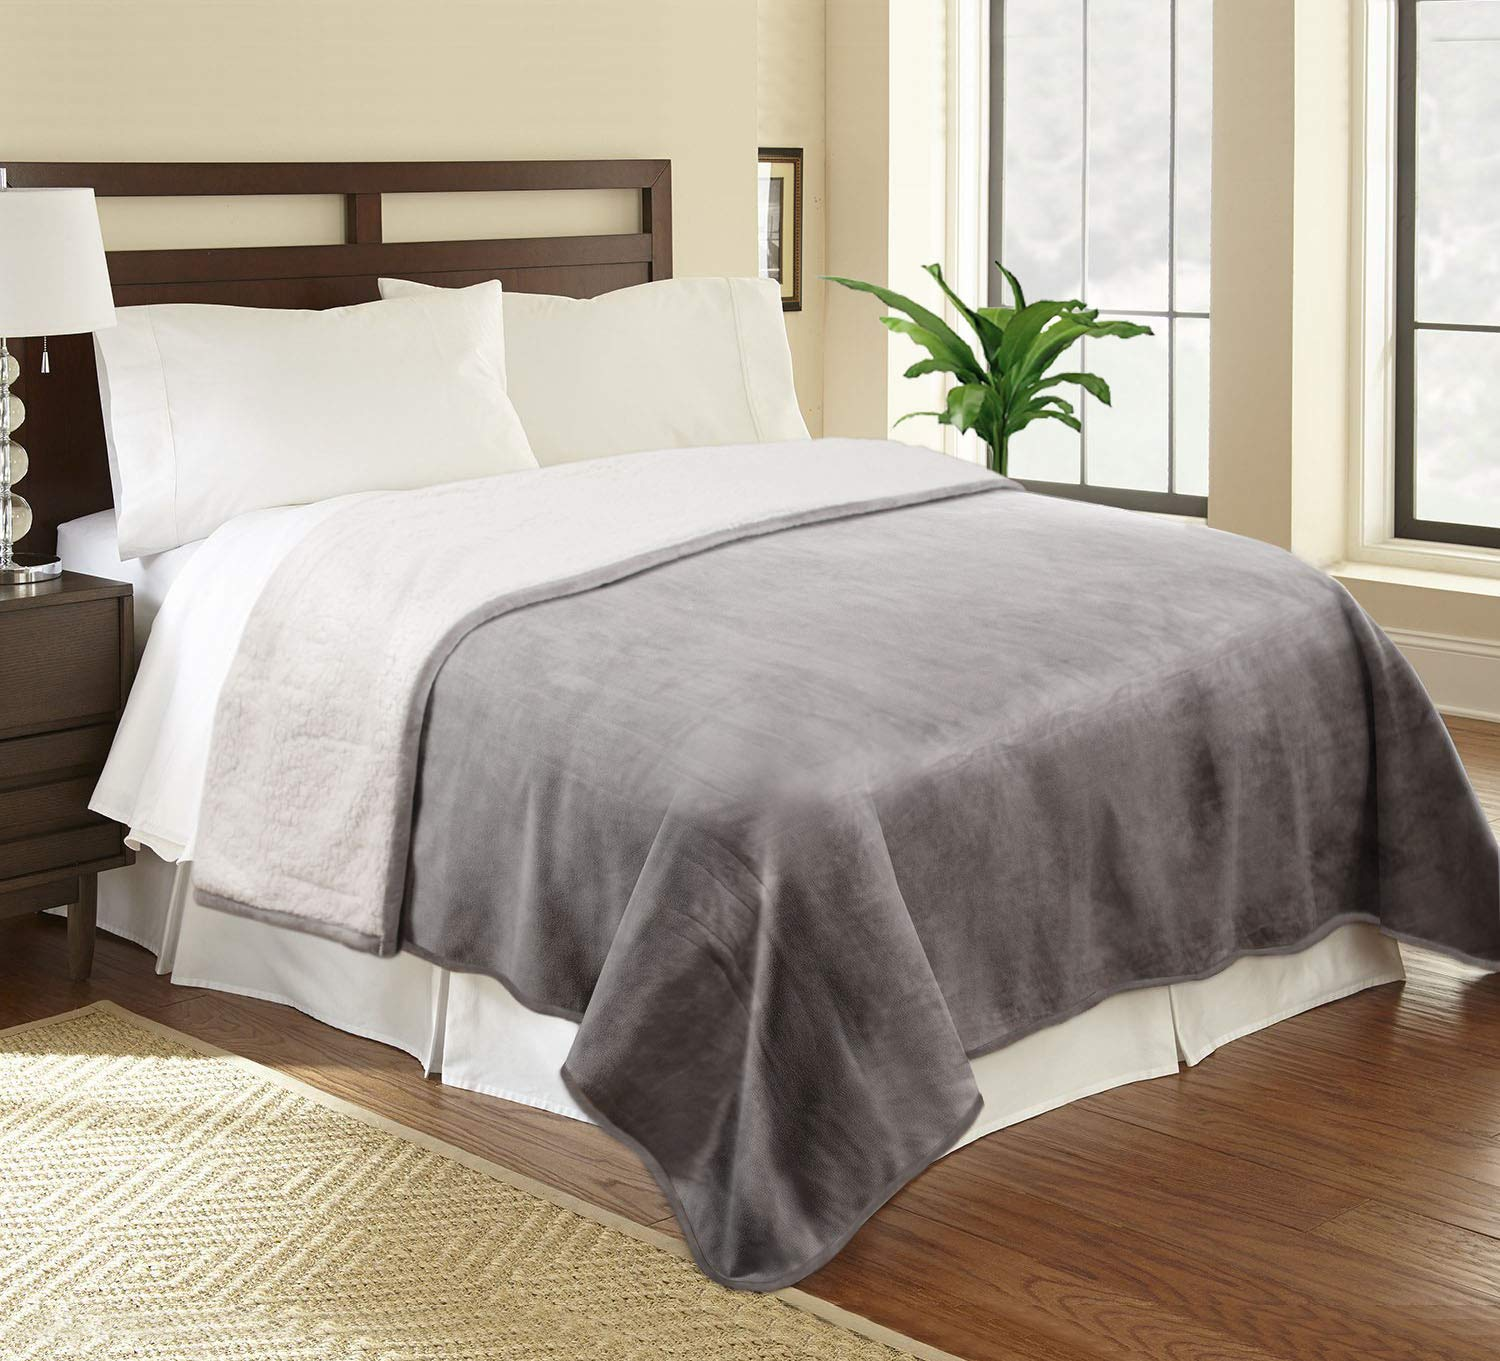 Marquees Electric Blanket Heated Overview